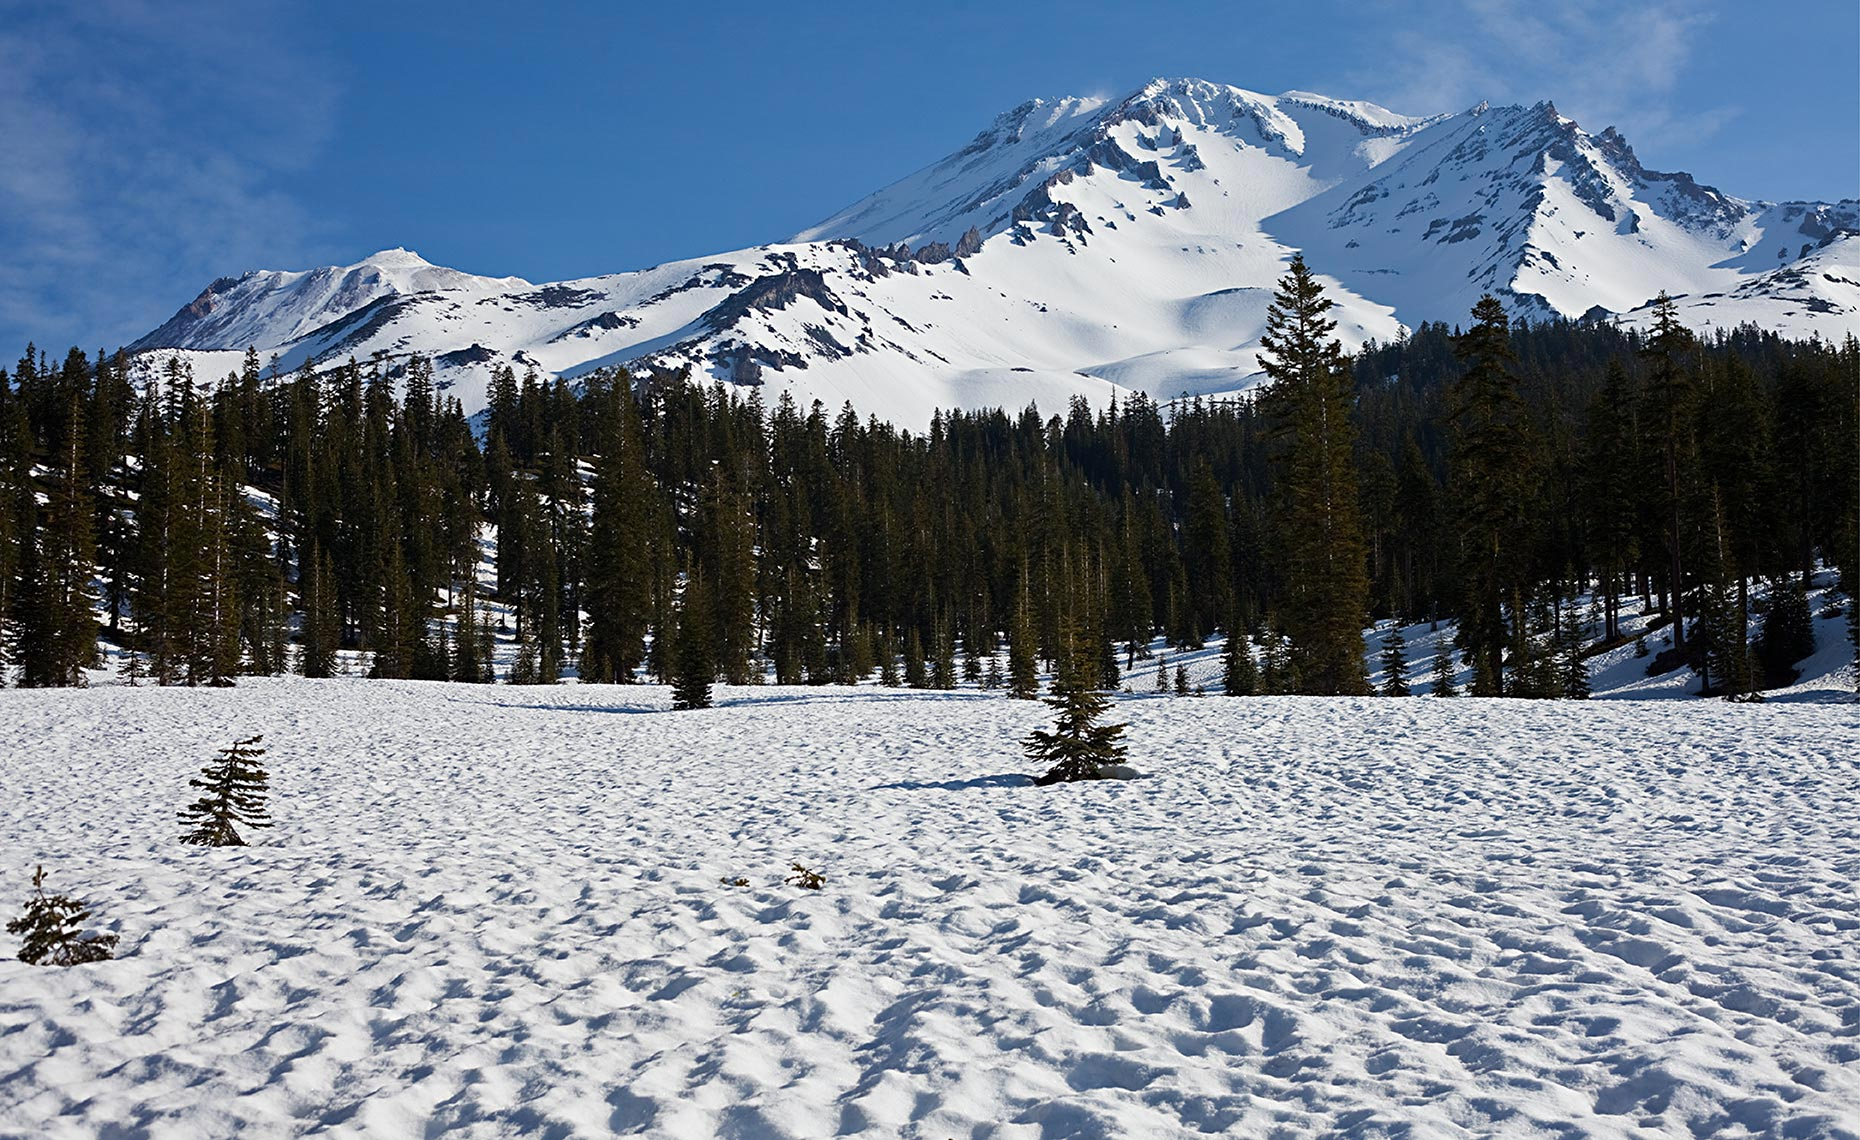 25_Mt_Shasta_California_Environment_Landscape_Chris_Wellhausen_Photography.JPG